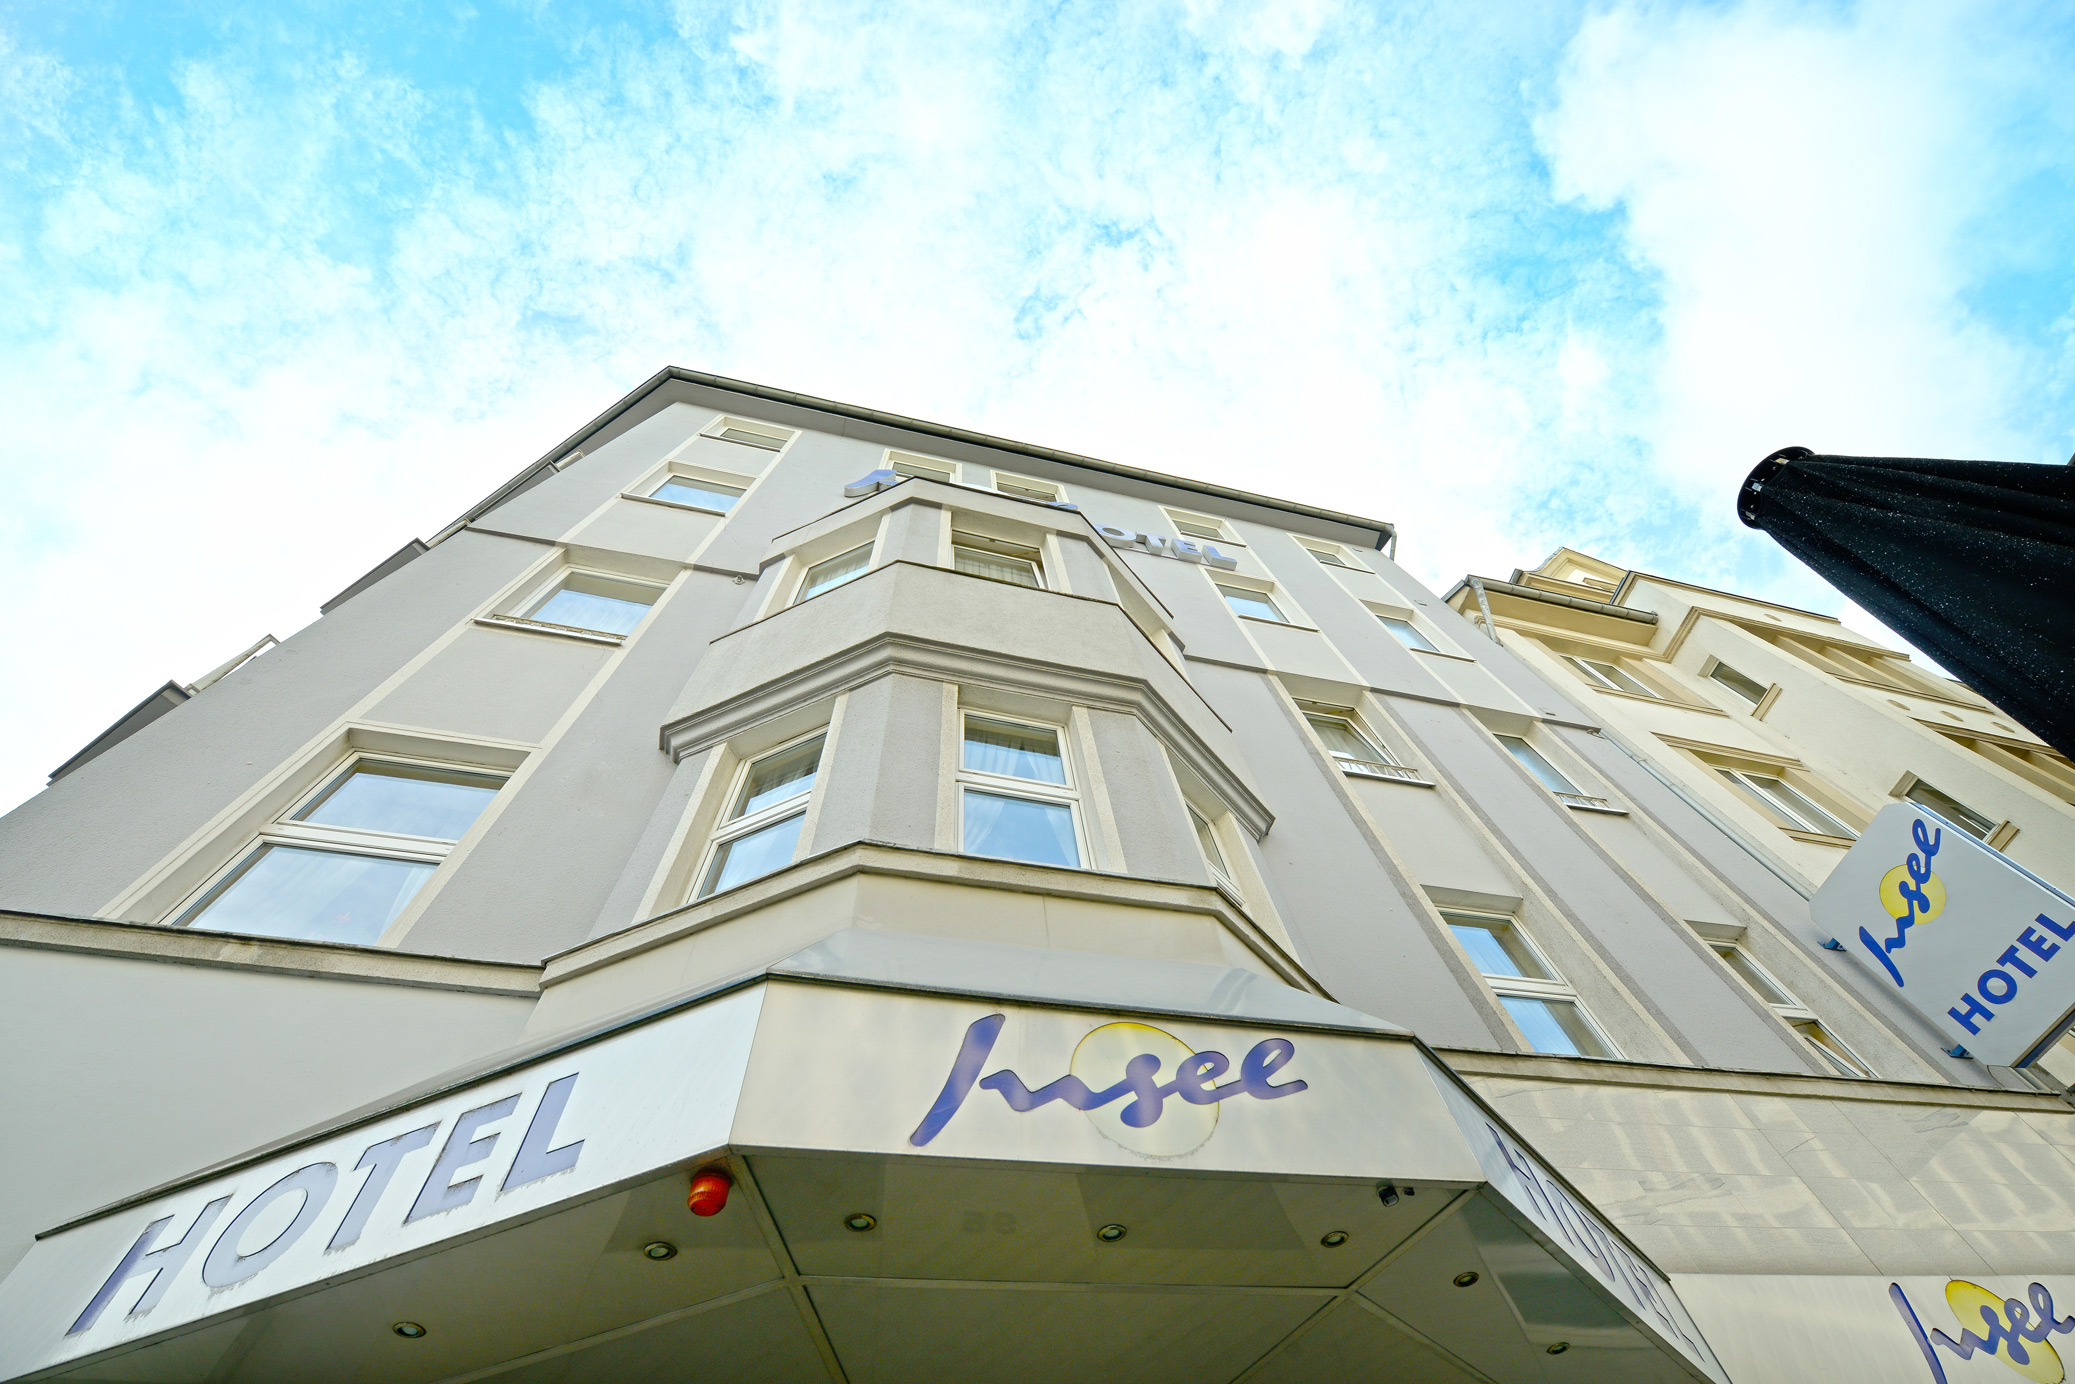 Insel Hotel, we're pleased to have you!